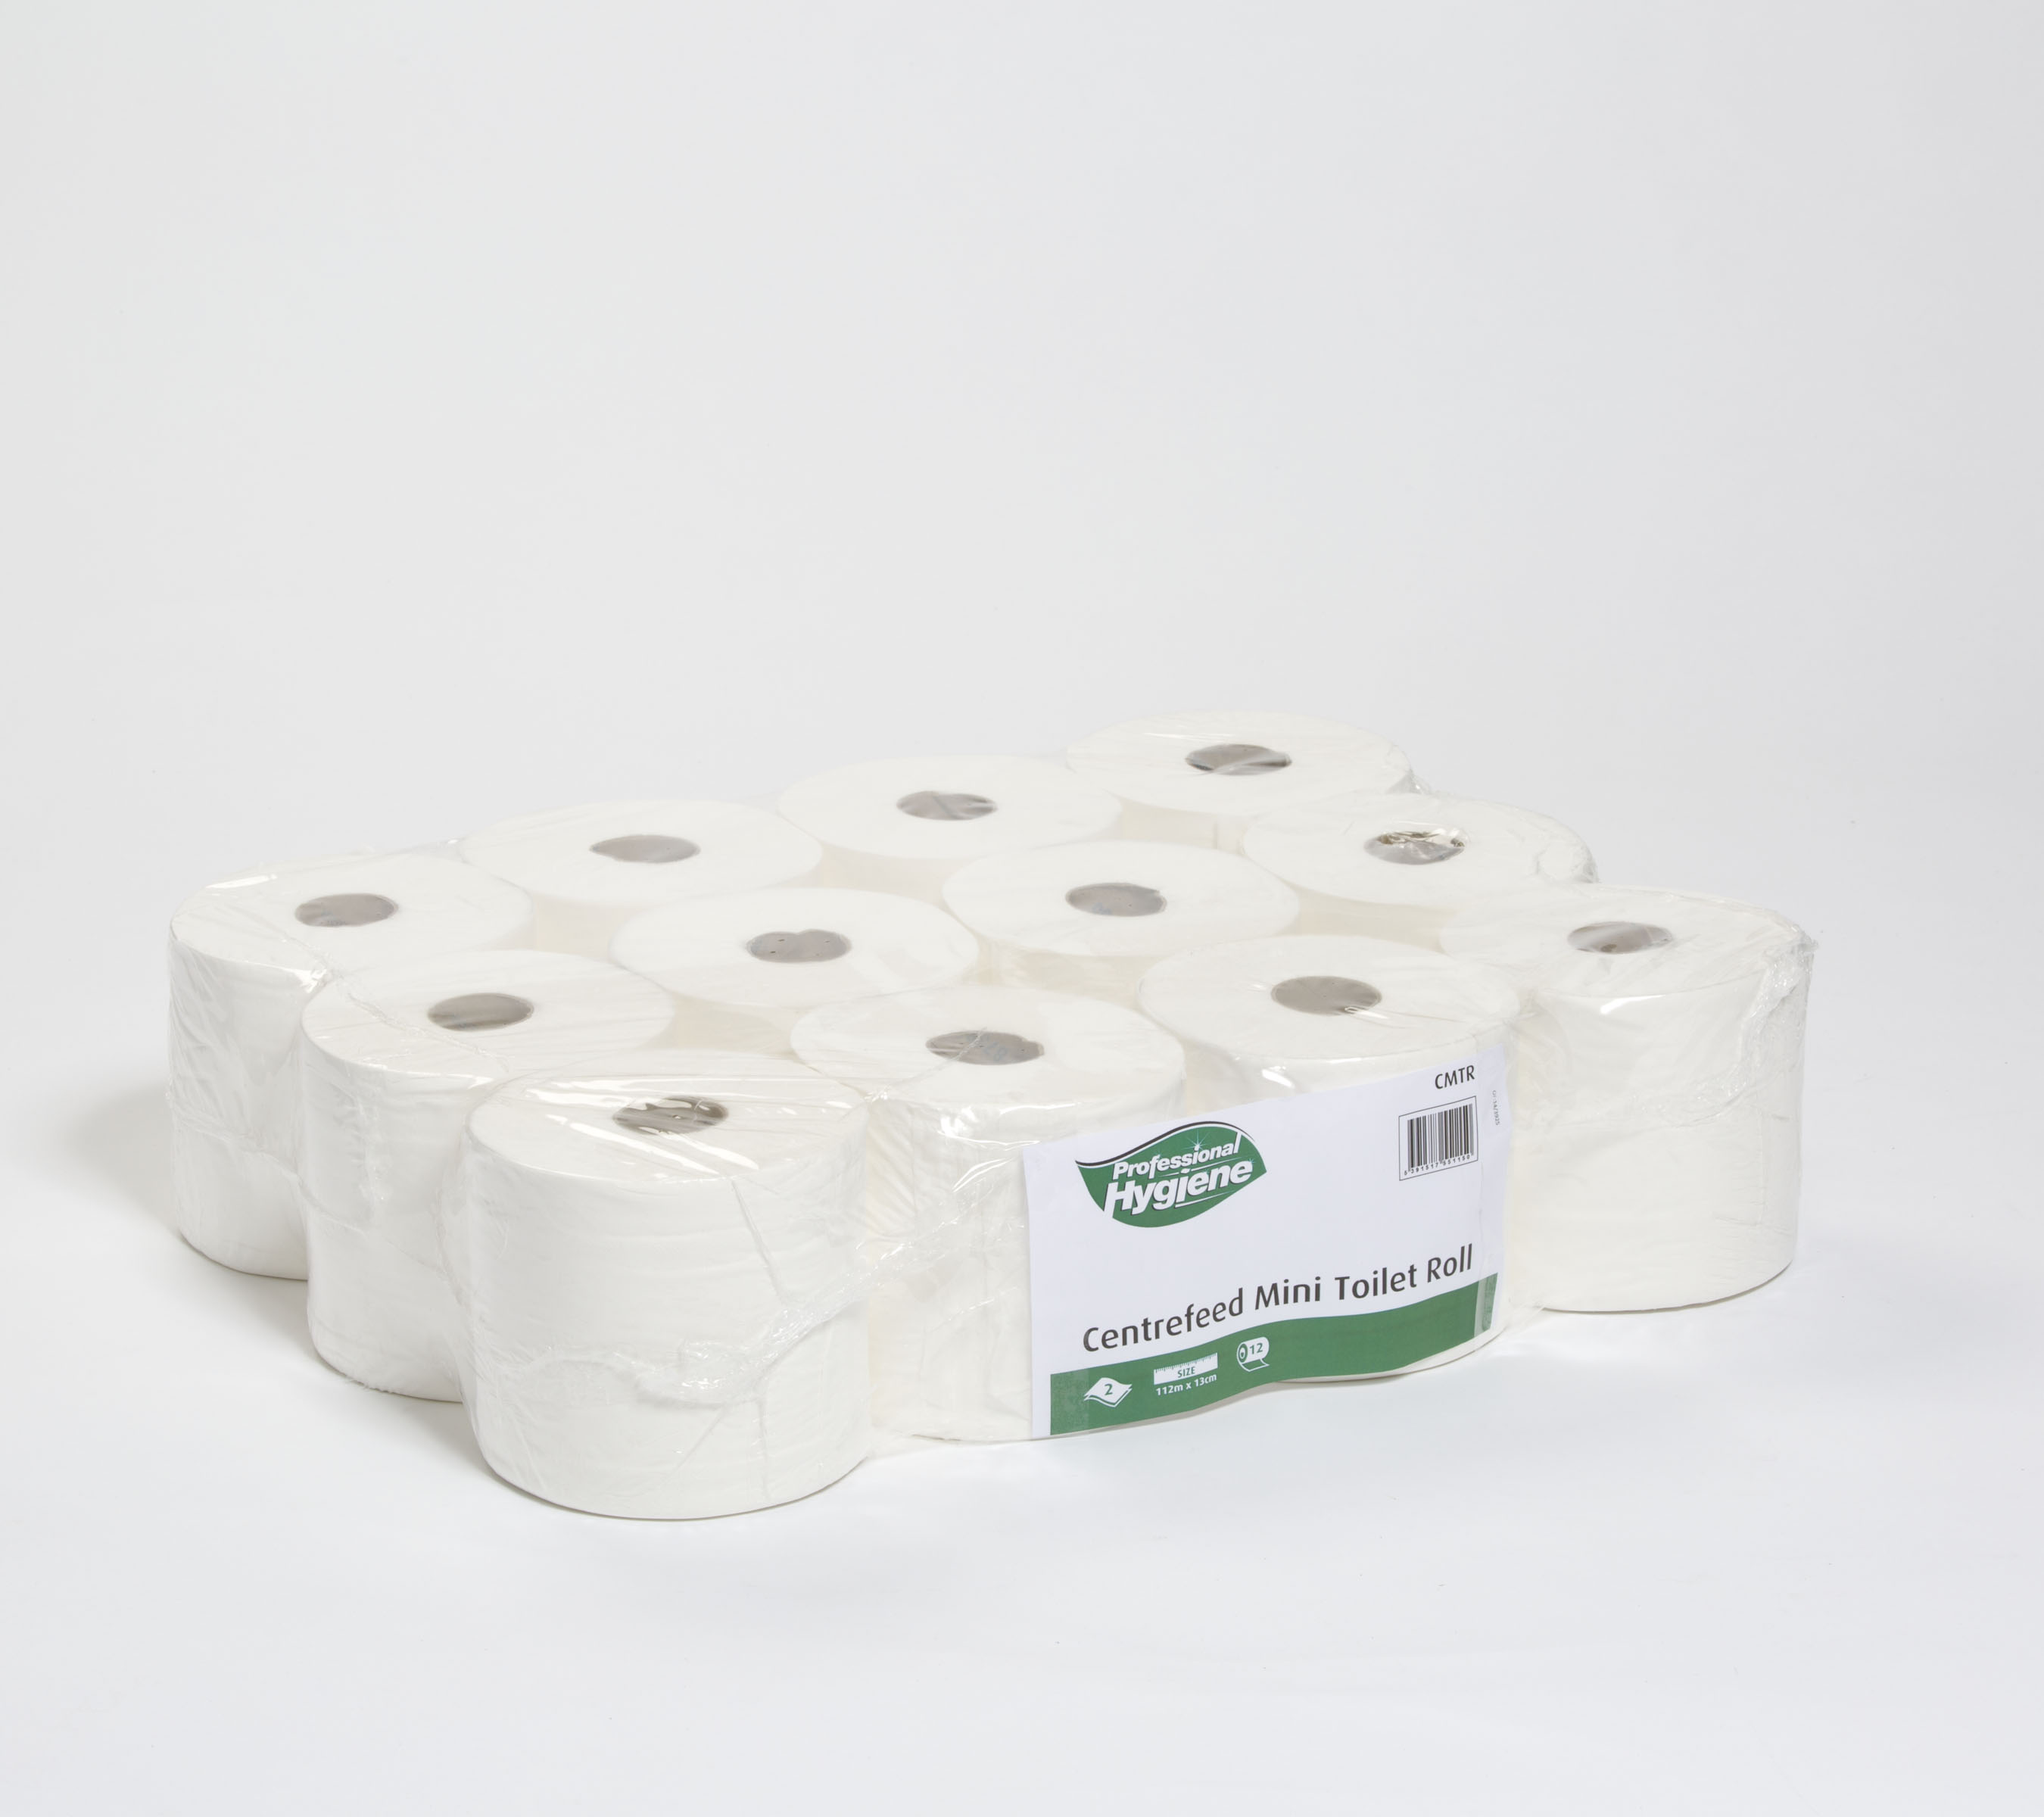 CENTREFEED MINI TOILET ROLL 2 PLY - 112M x 13CM image